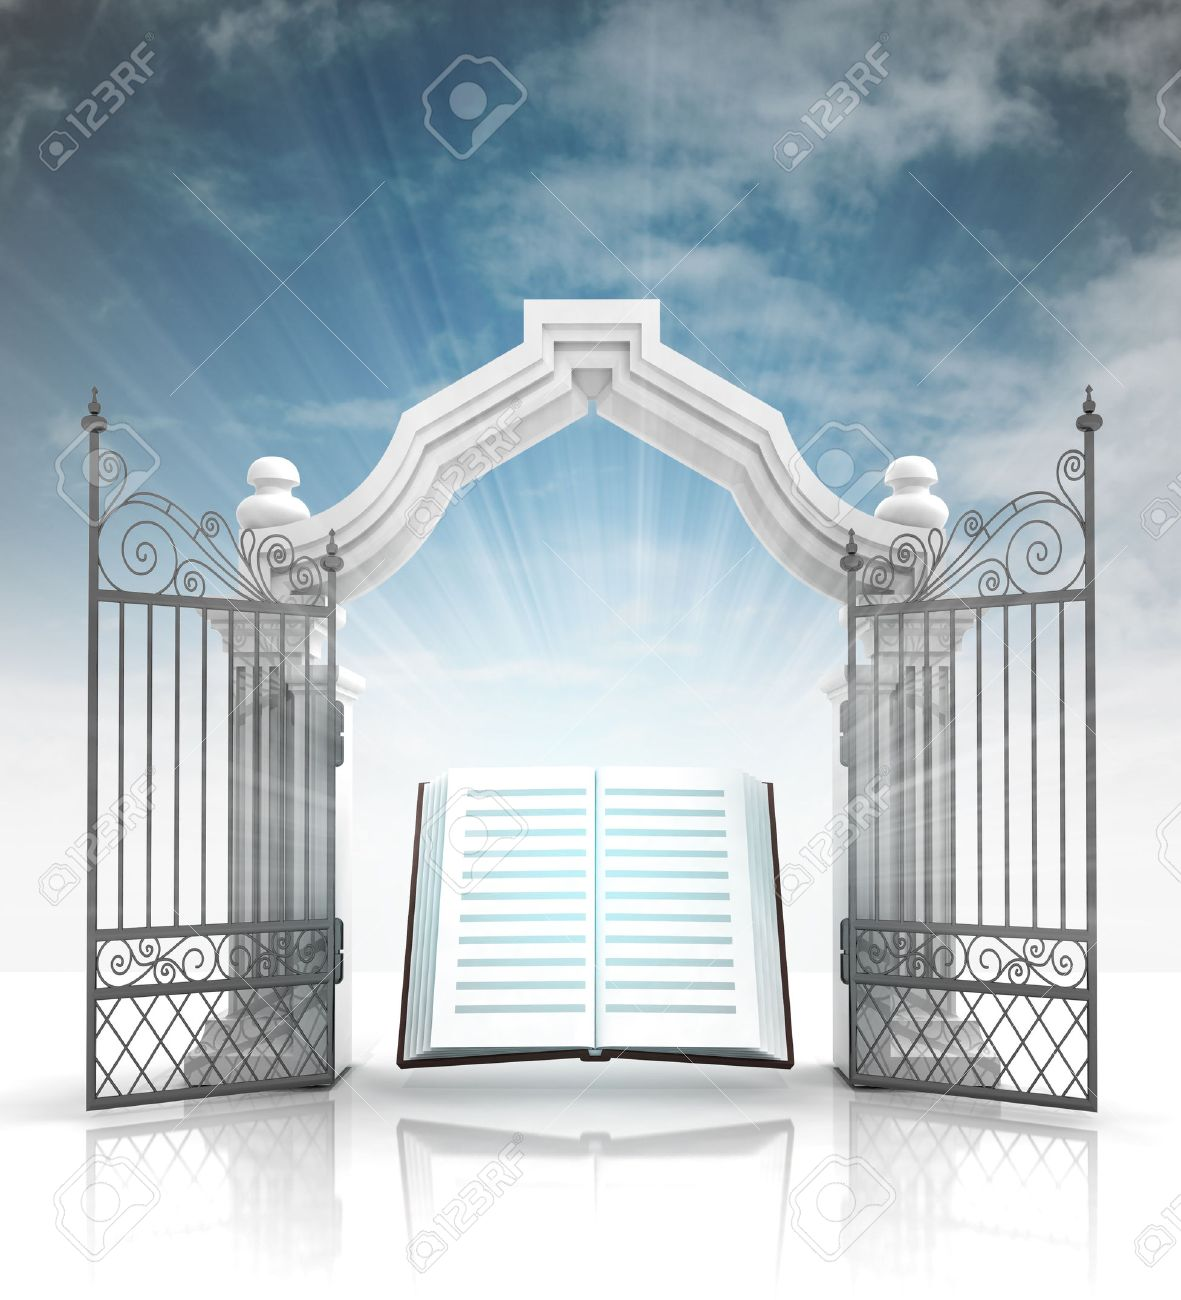 open baroque gate with holy bible and sky illustration stock photo